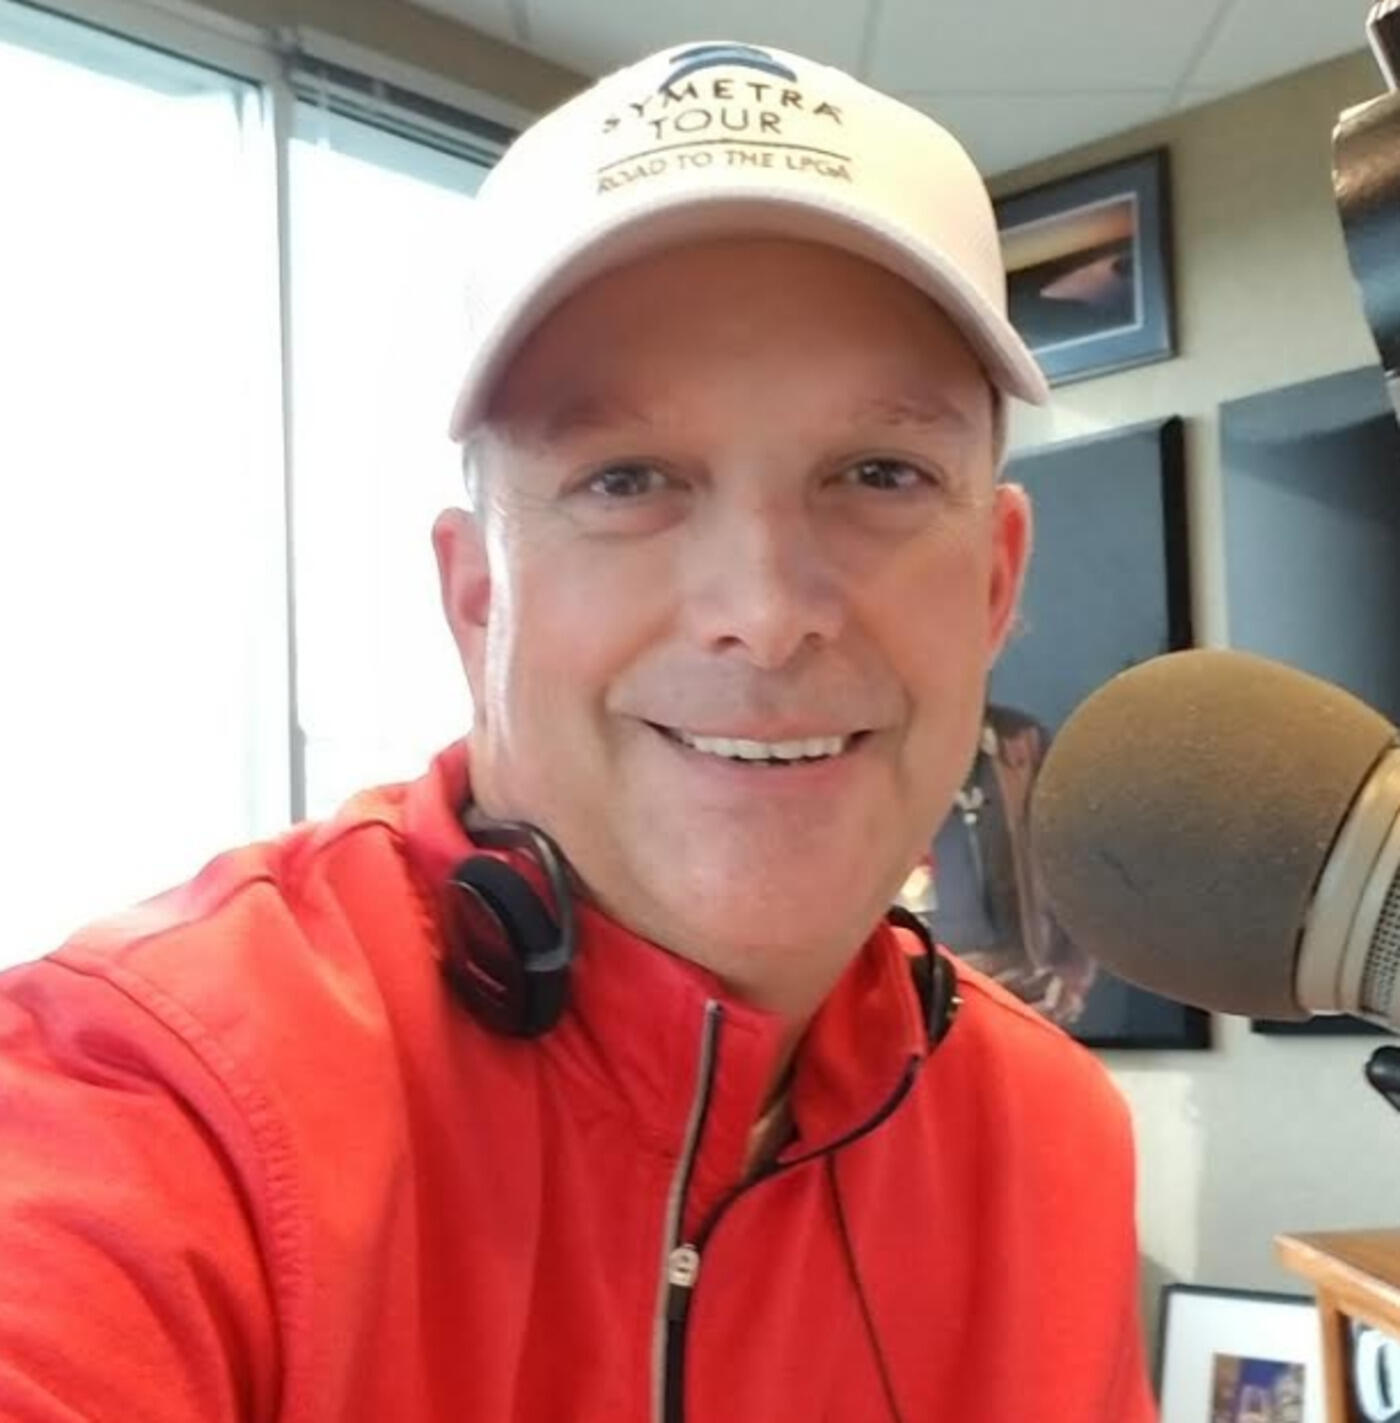 Listen to Sports Talk with Lance McAlister 1/29/2019 | Lance McAlister | Podcasts